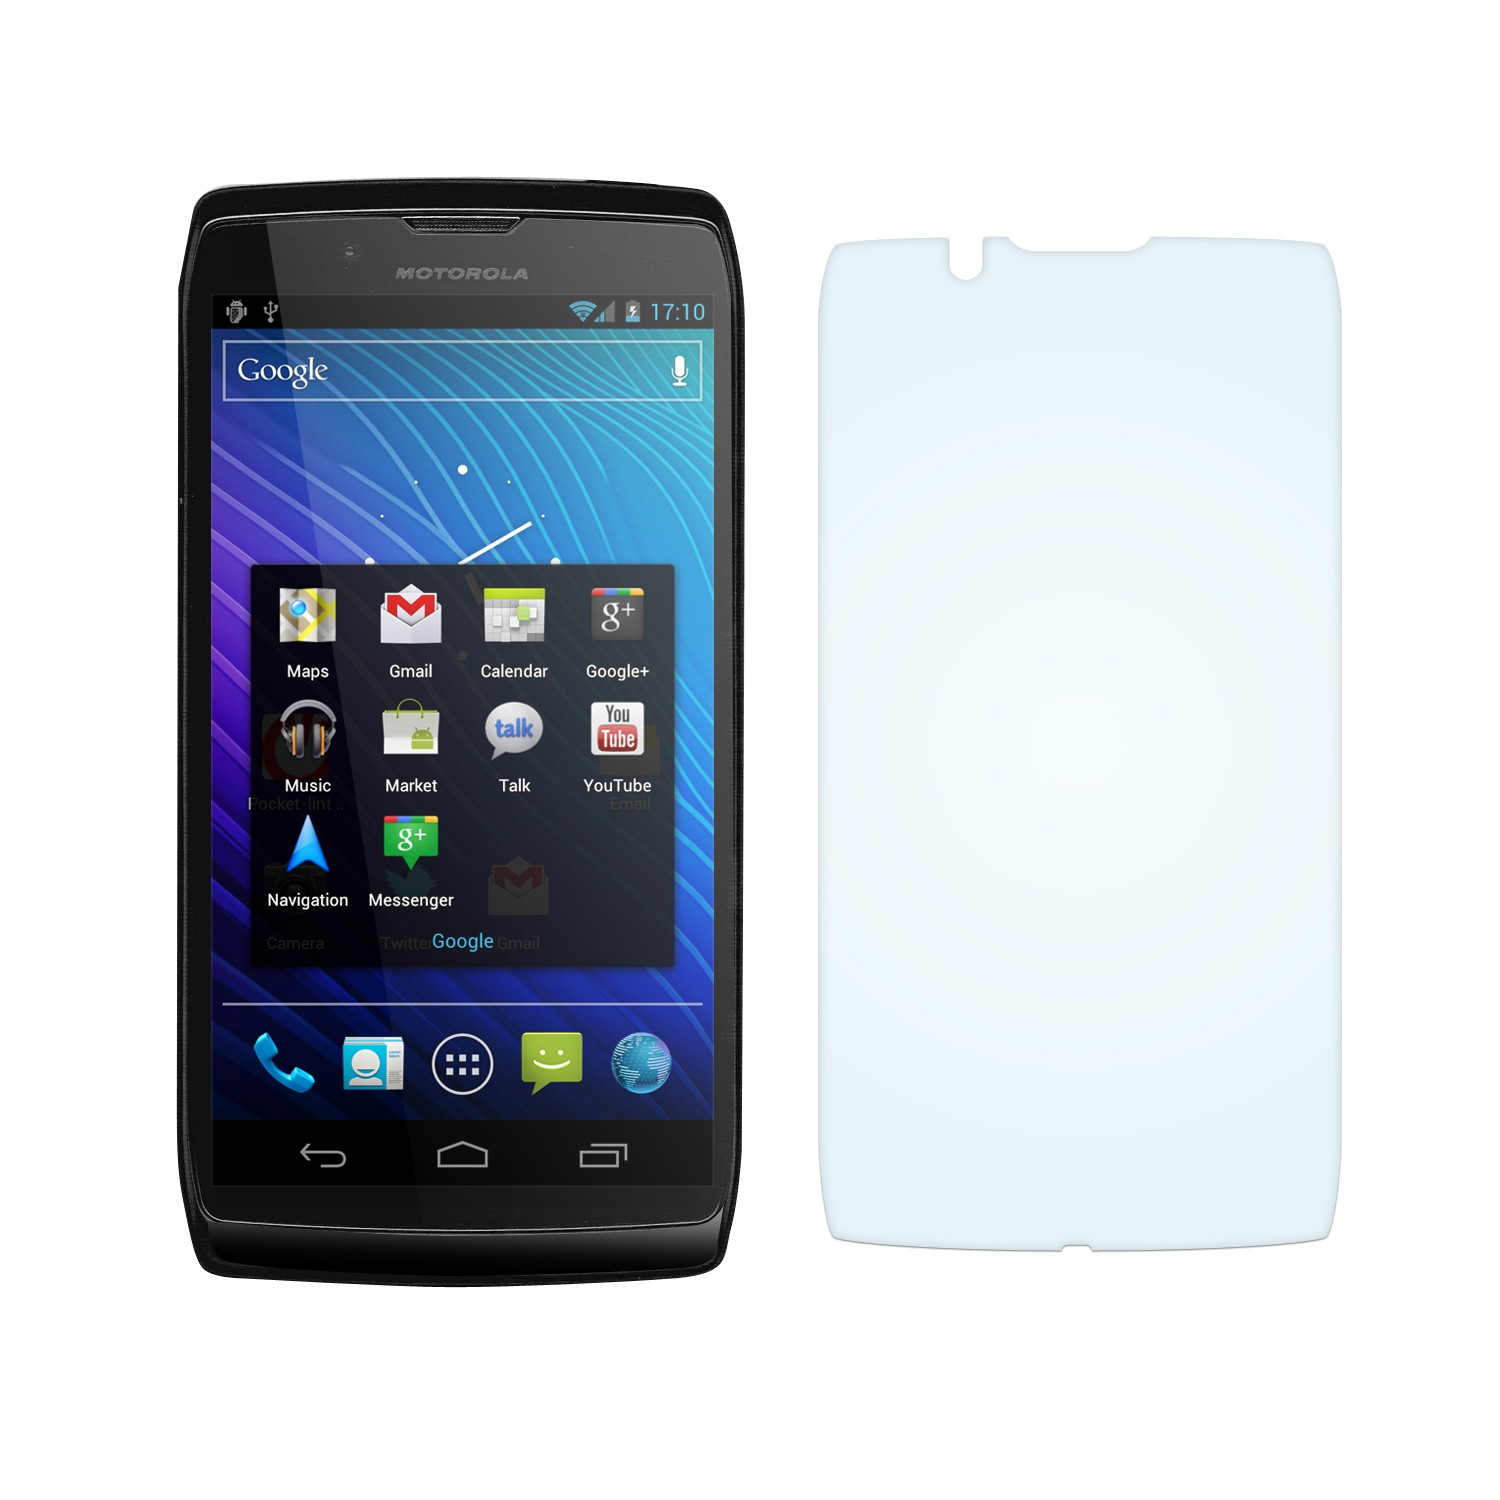 Case& Screen Protector ON SALE - Motorola Razr V Mt887